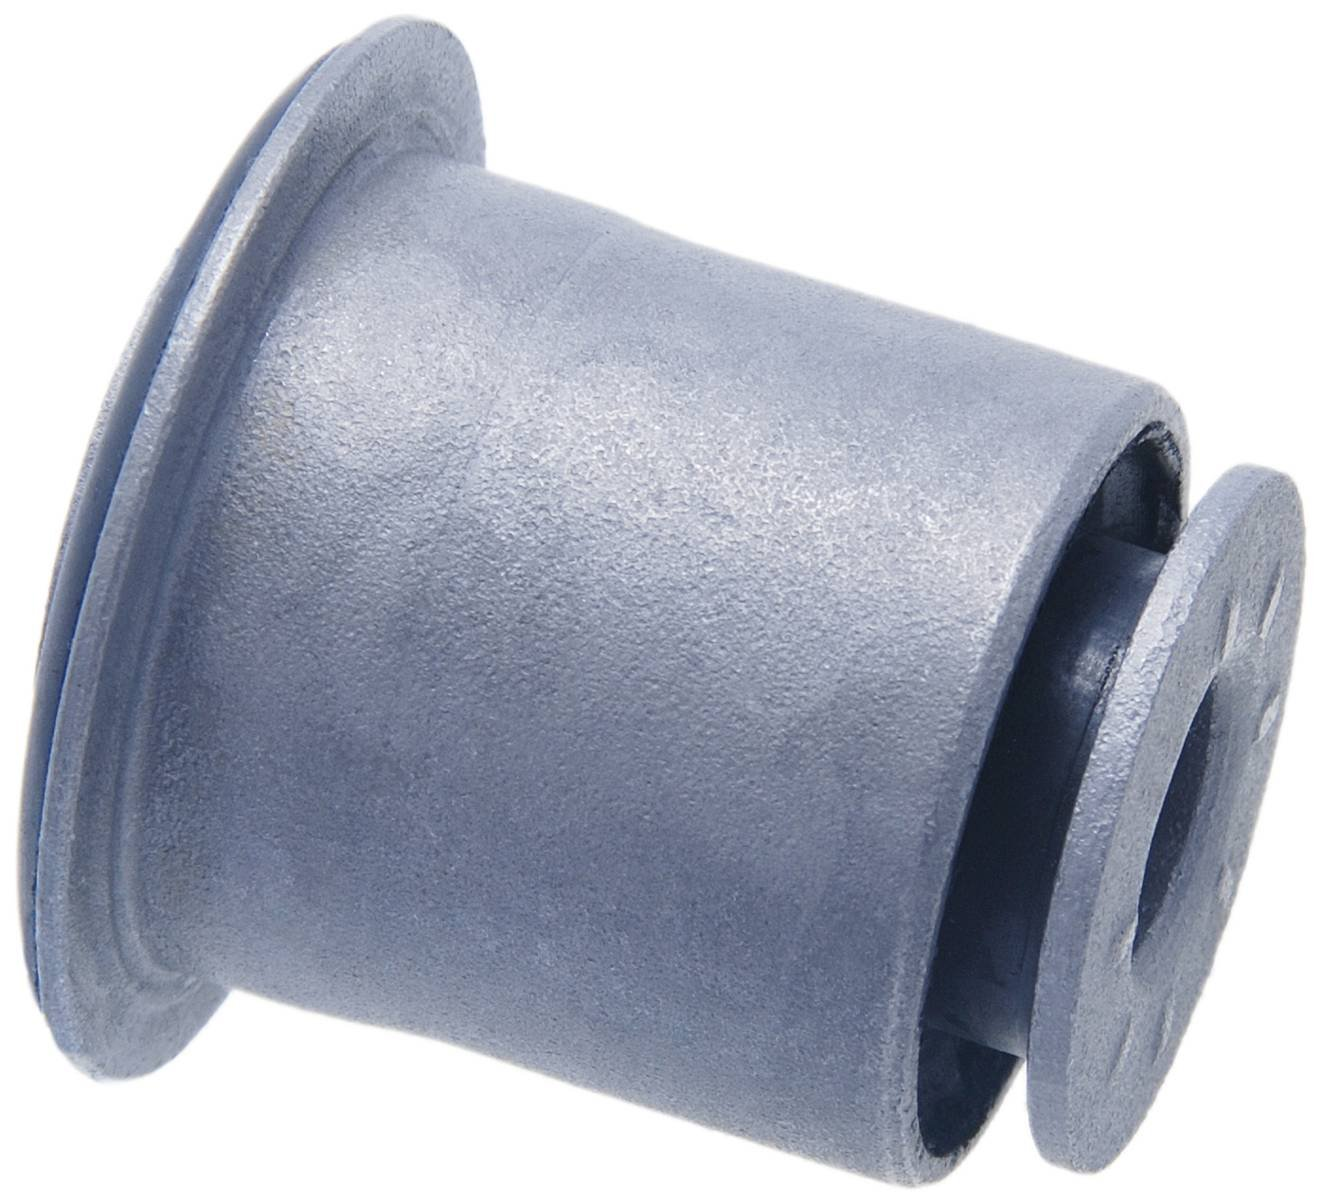 A reference listing of OEM style bushings, prices and